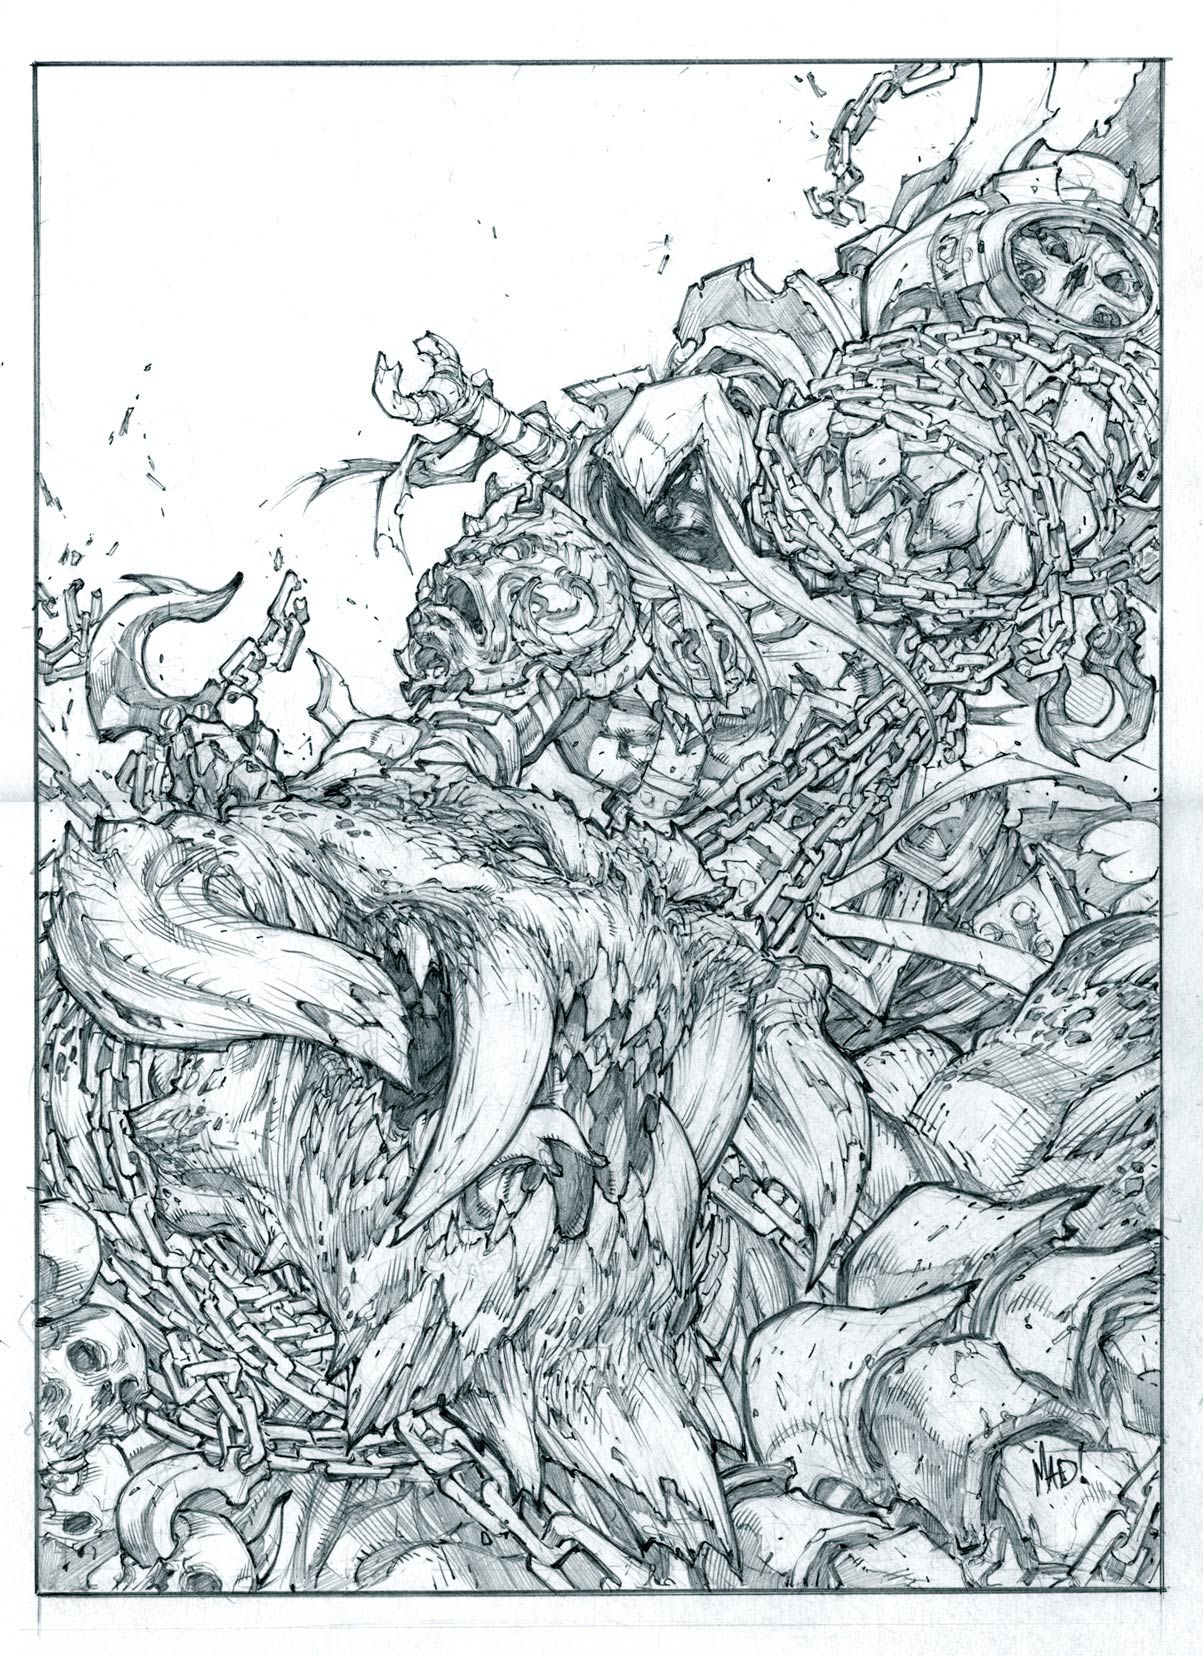 Darksiders Joe Madureira M Comic Art Community Gallery Of Comic Art Joe Madureira Comic Art Line Art Drawings